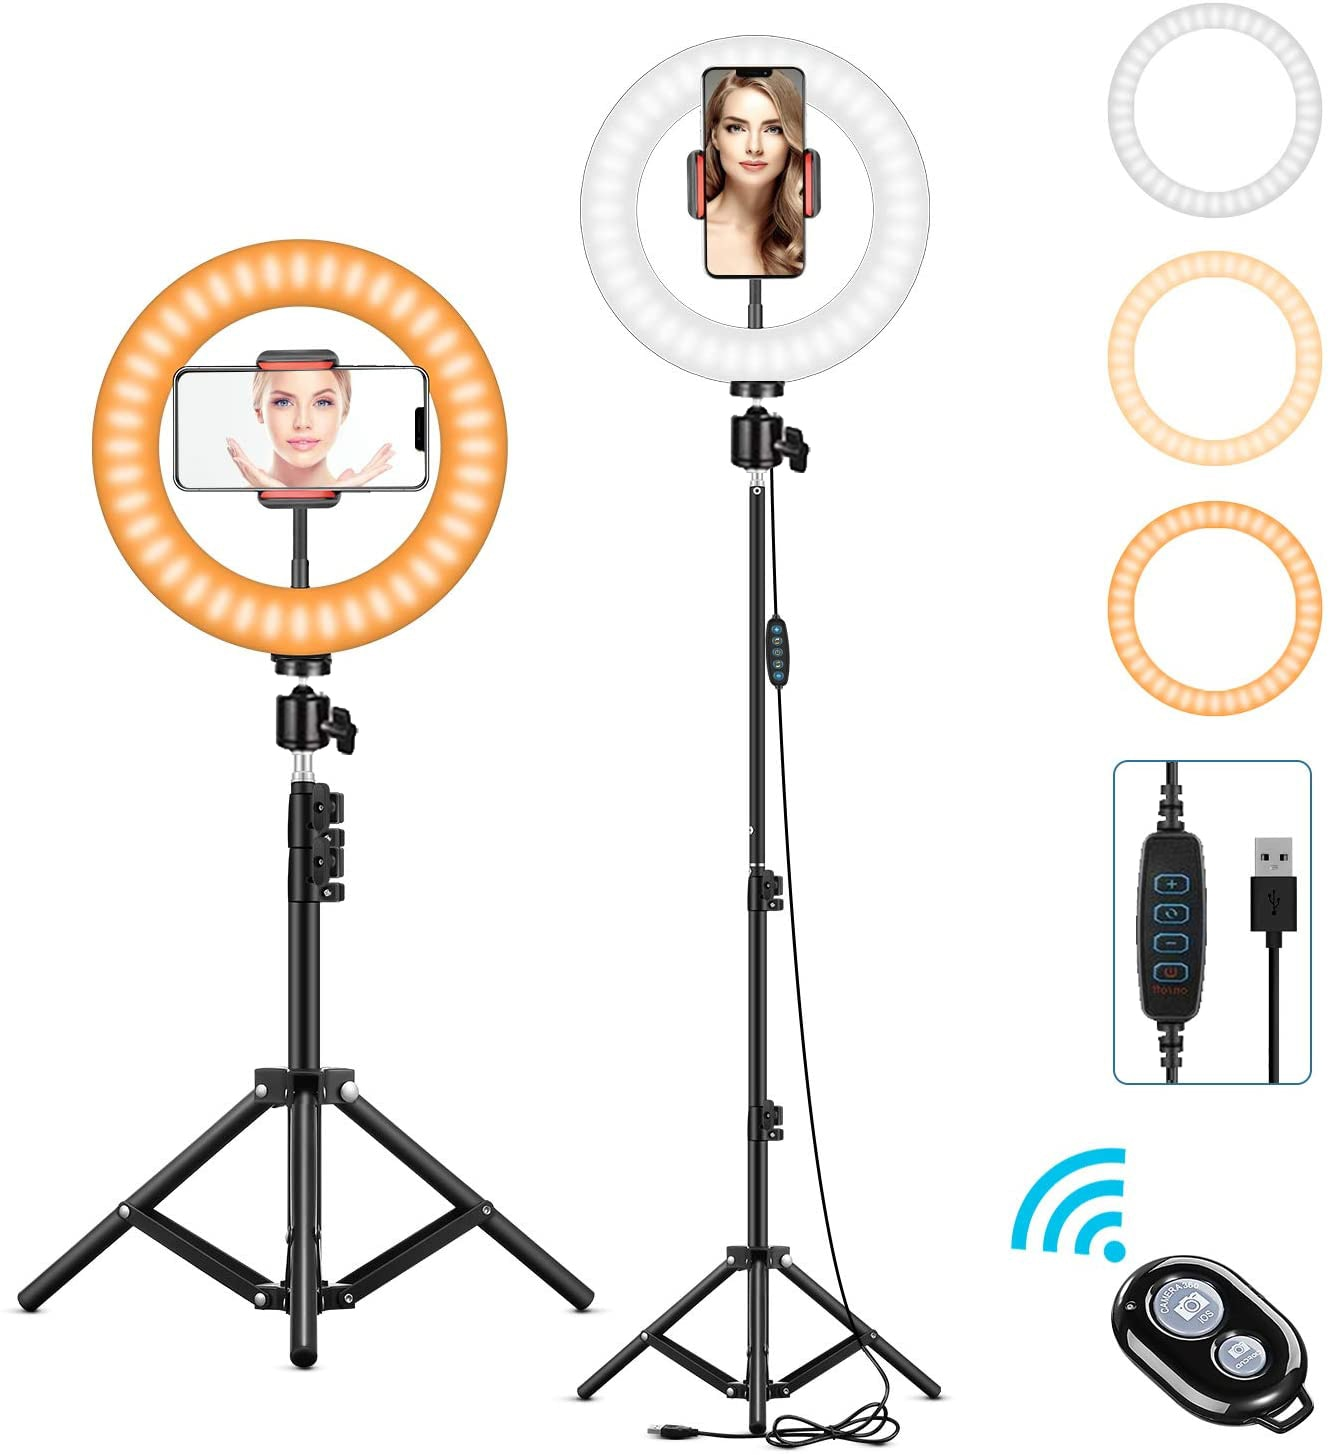 l116t camera light photo studio light photography lighting led video light charger for canon nikon camera dv camcorder LED Photography Fill Lighting with Tripod Stand Camera Photo Studio Circle Led Selfie Ring Light Phone Lamp Video  Youtube